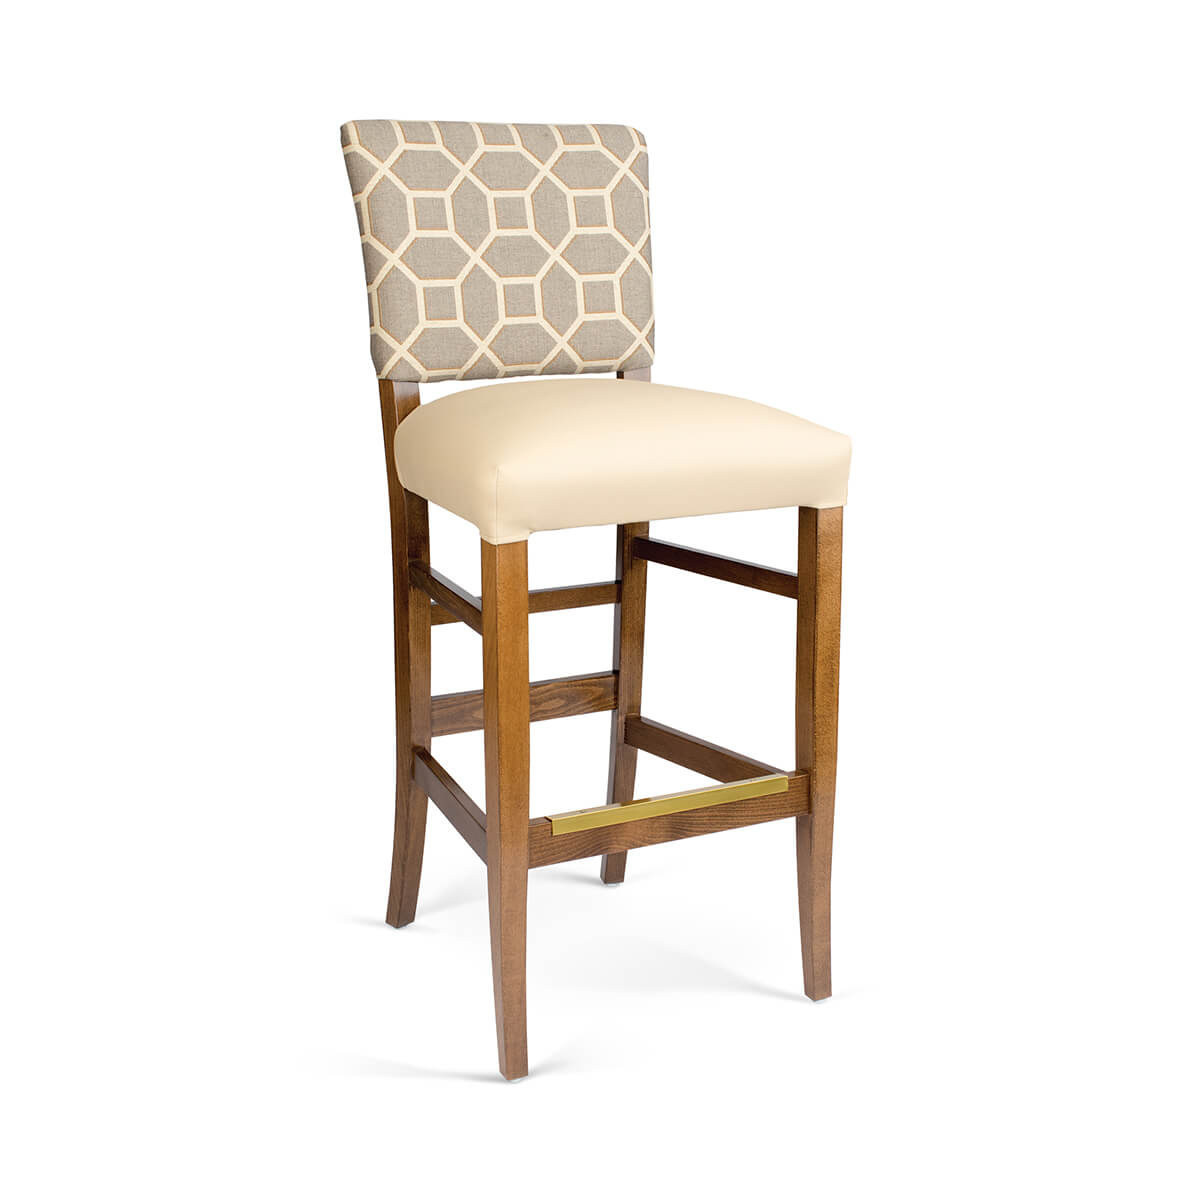 _0000s_0004_Remy Accent Barstool_1920